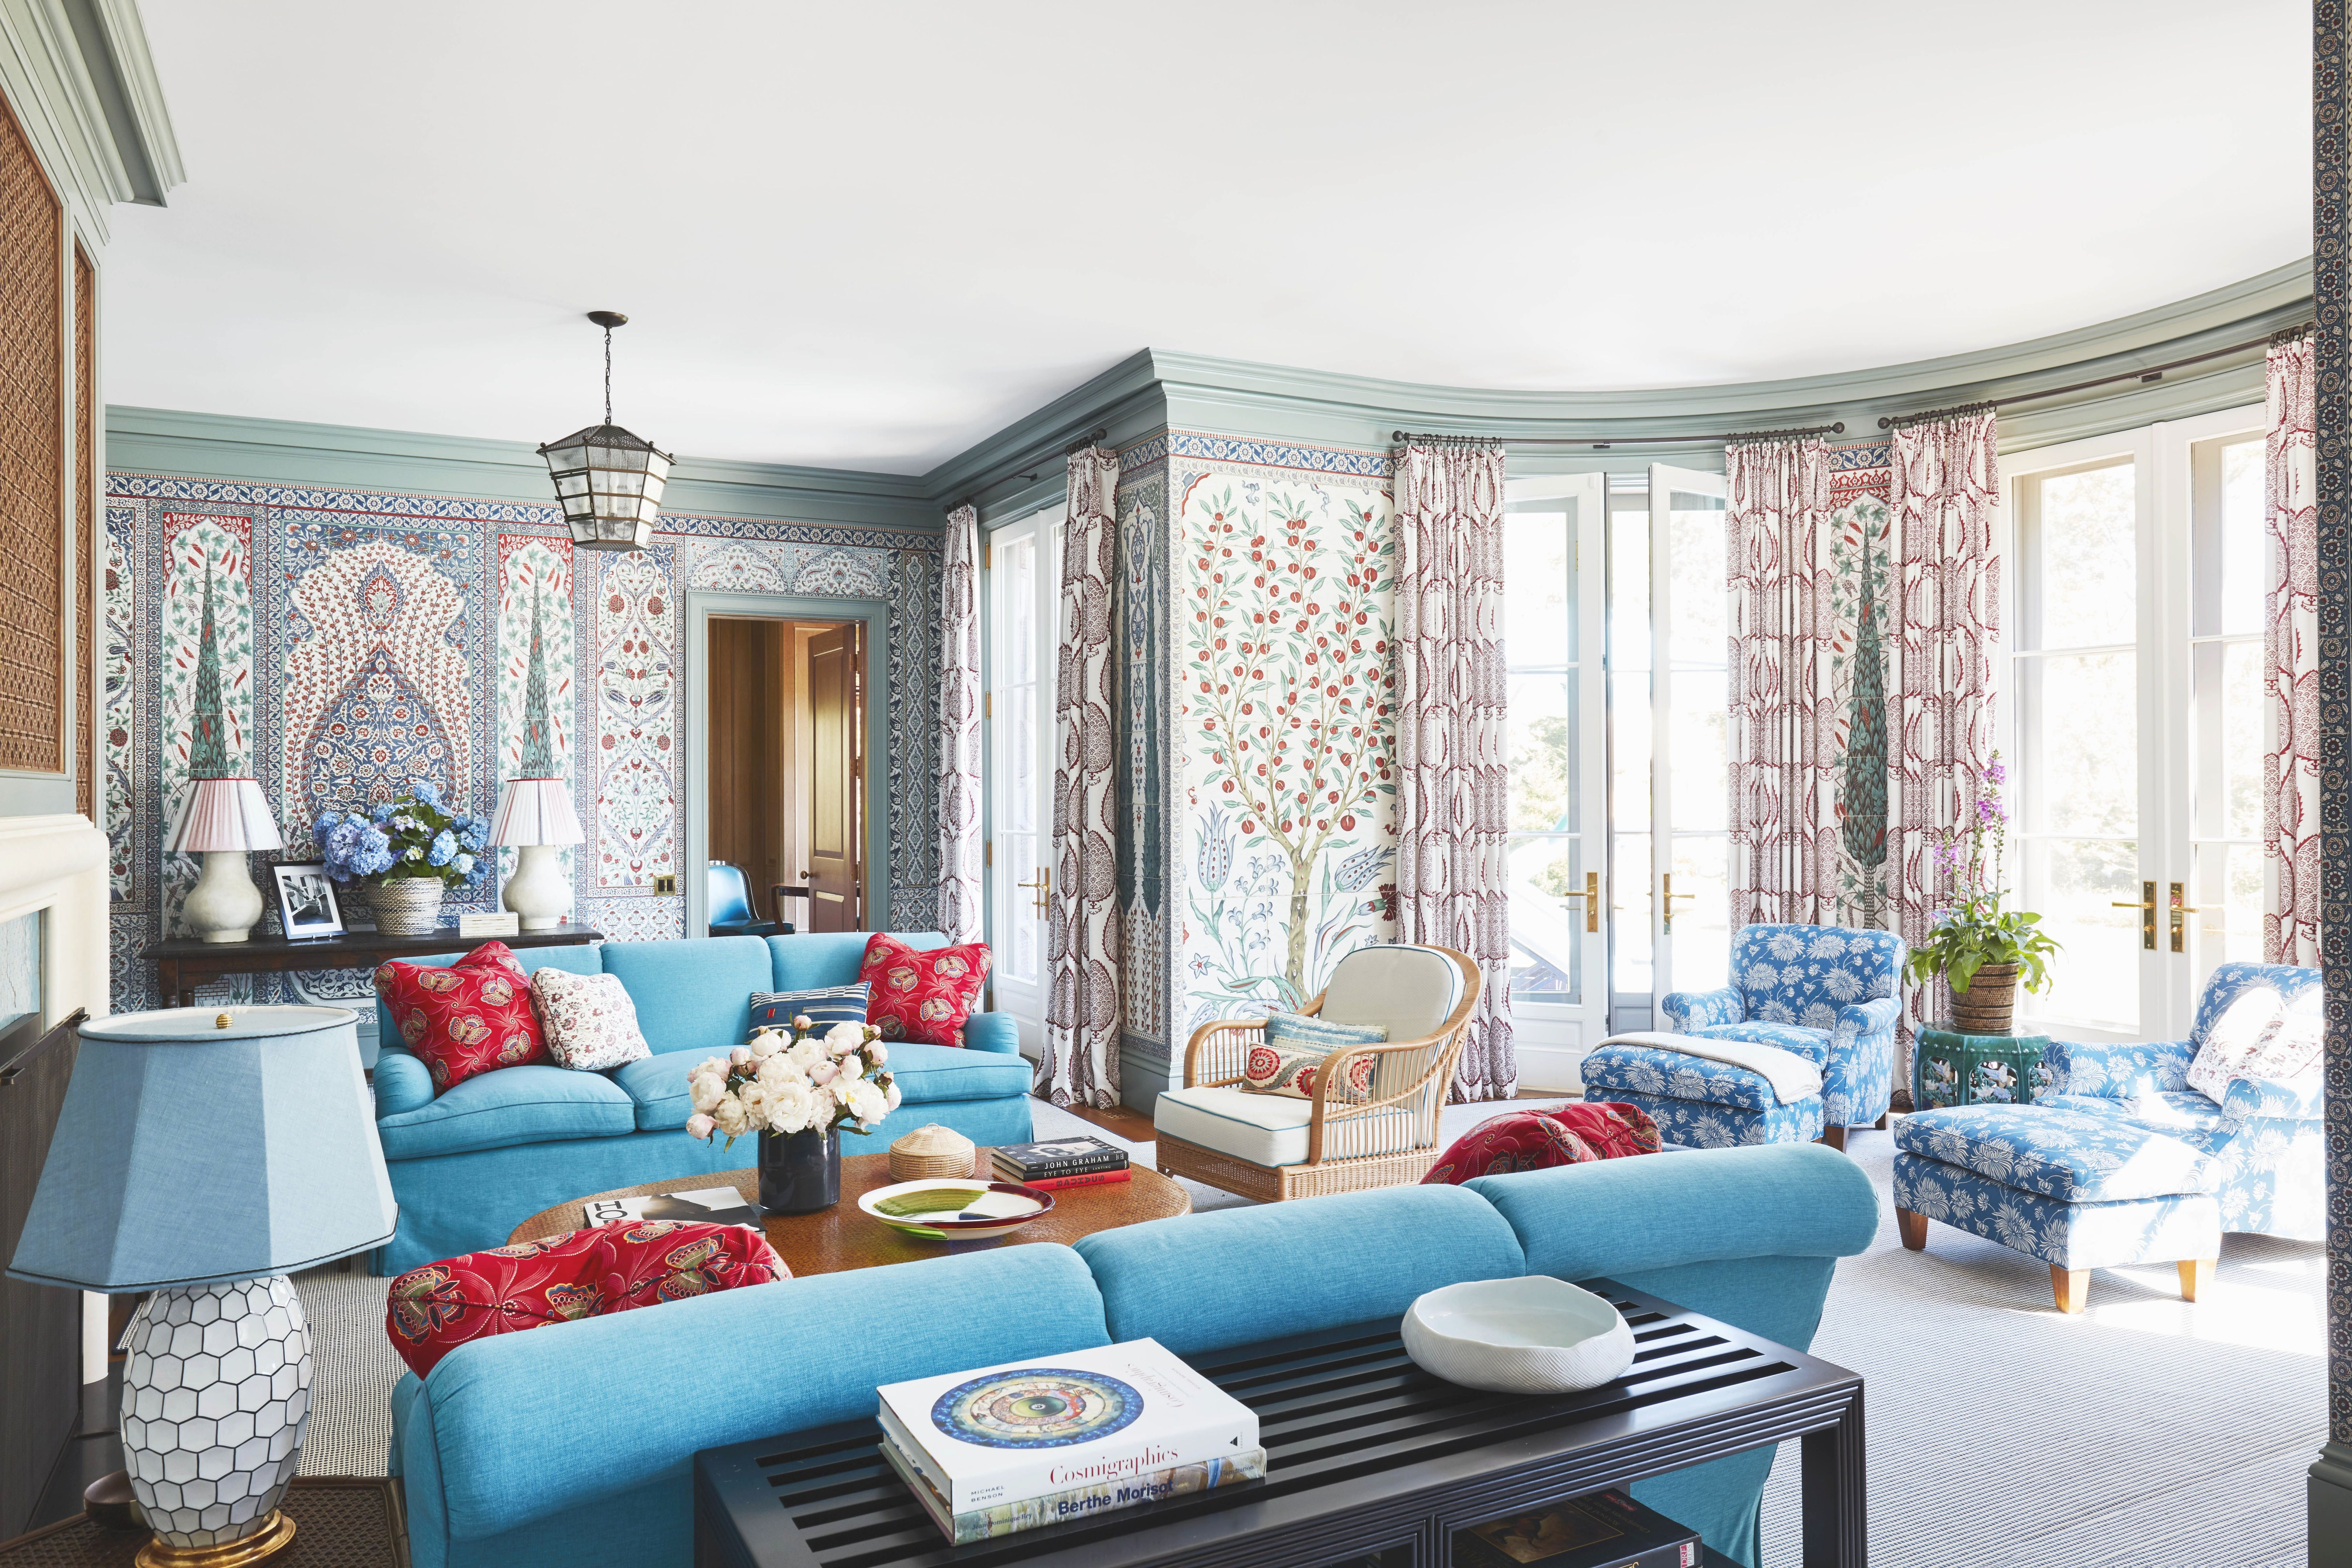 35 Best Living Room Ideas - Luxury Living Room Decor with regard to Turquoise Living Room Furniture